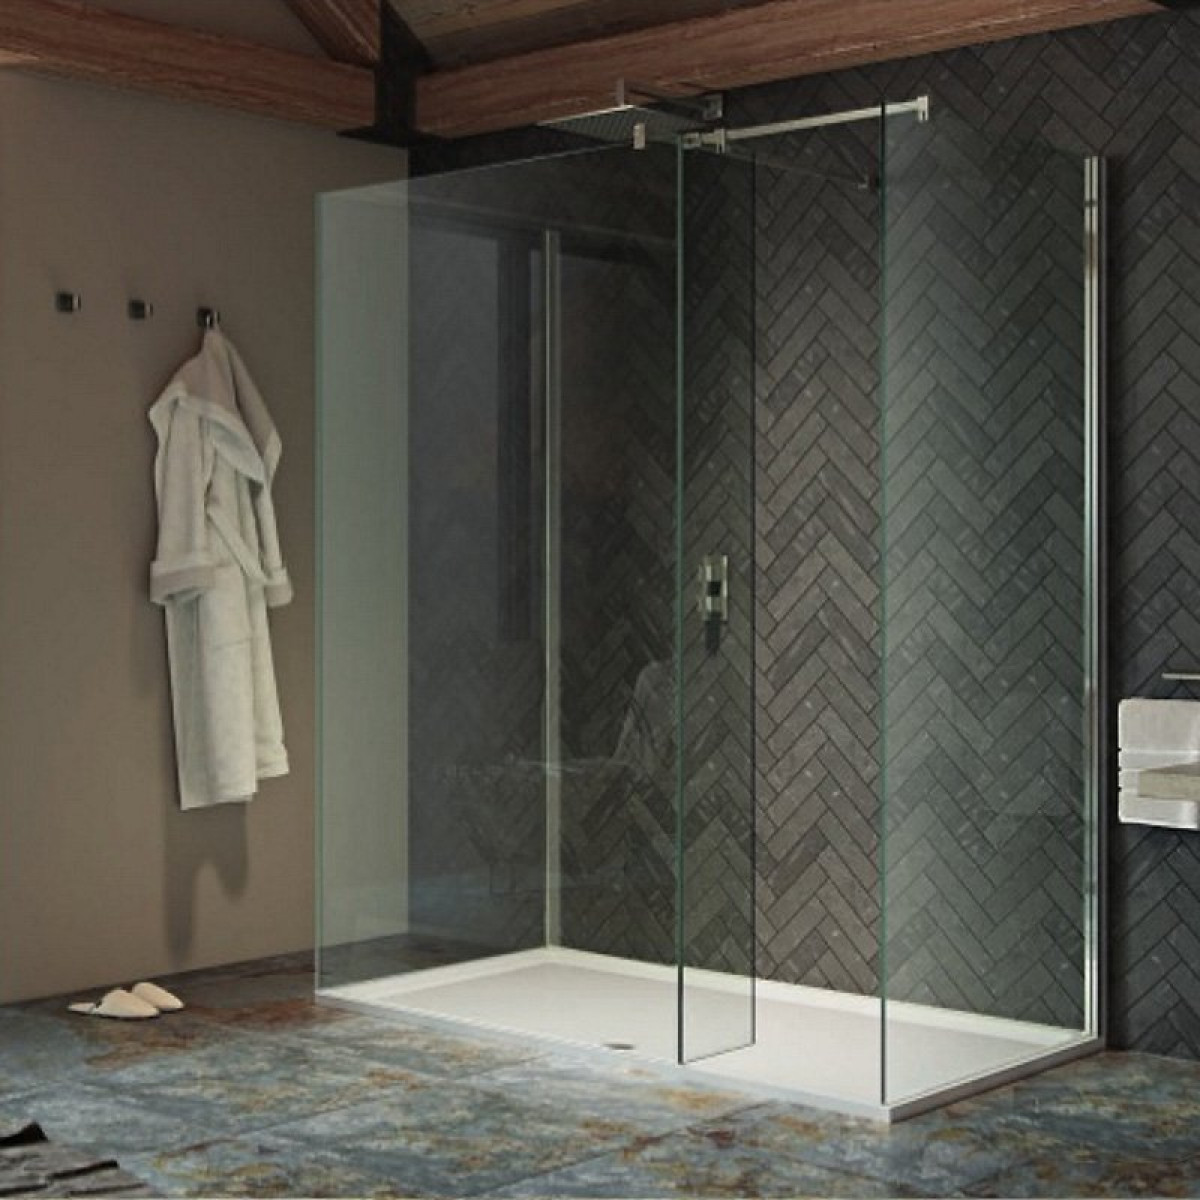 Kudos Ultimate2 10mm Three Sided 1500mm Walk In Shower